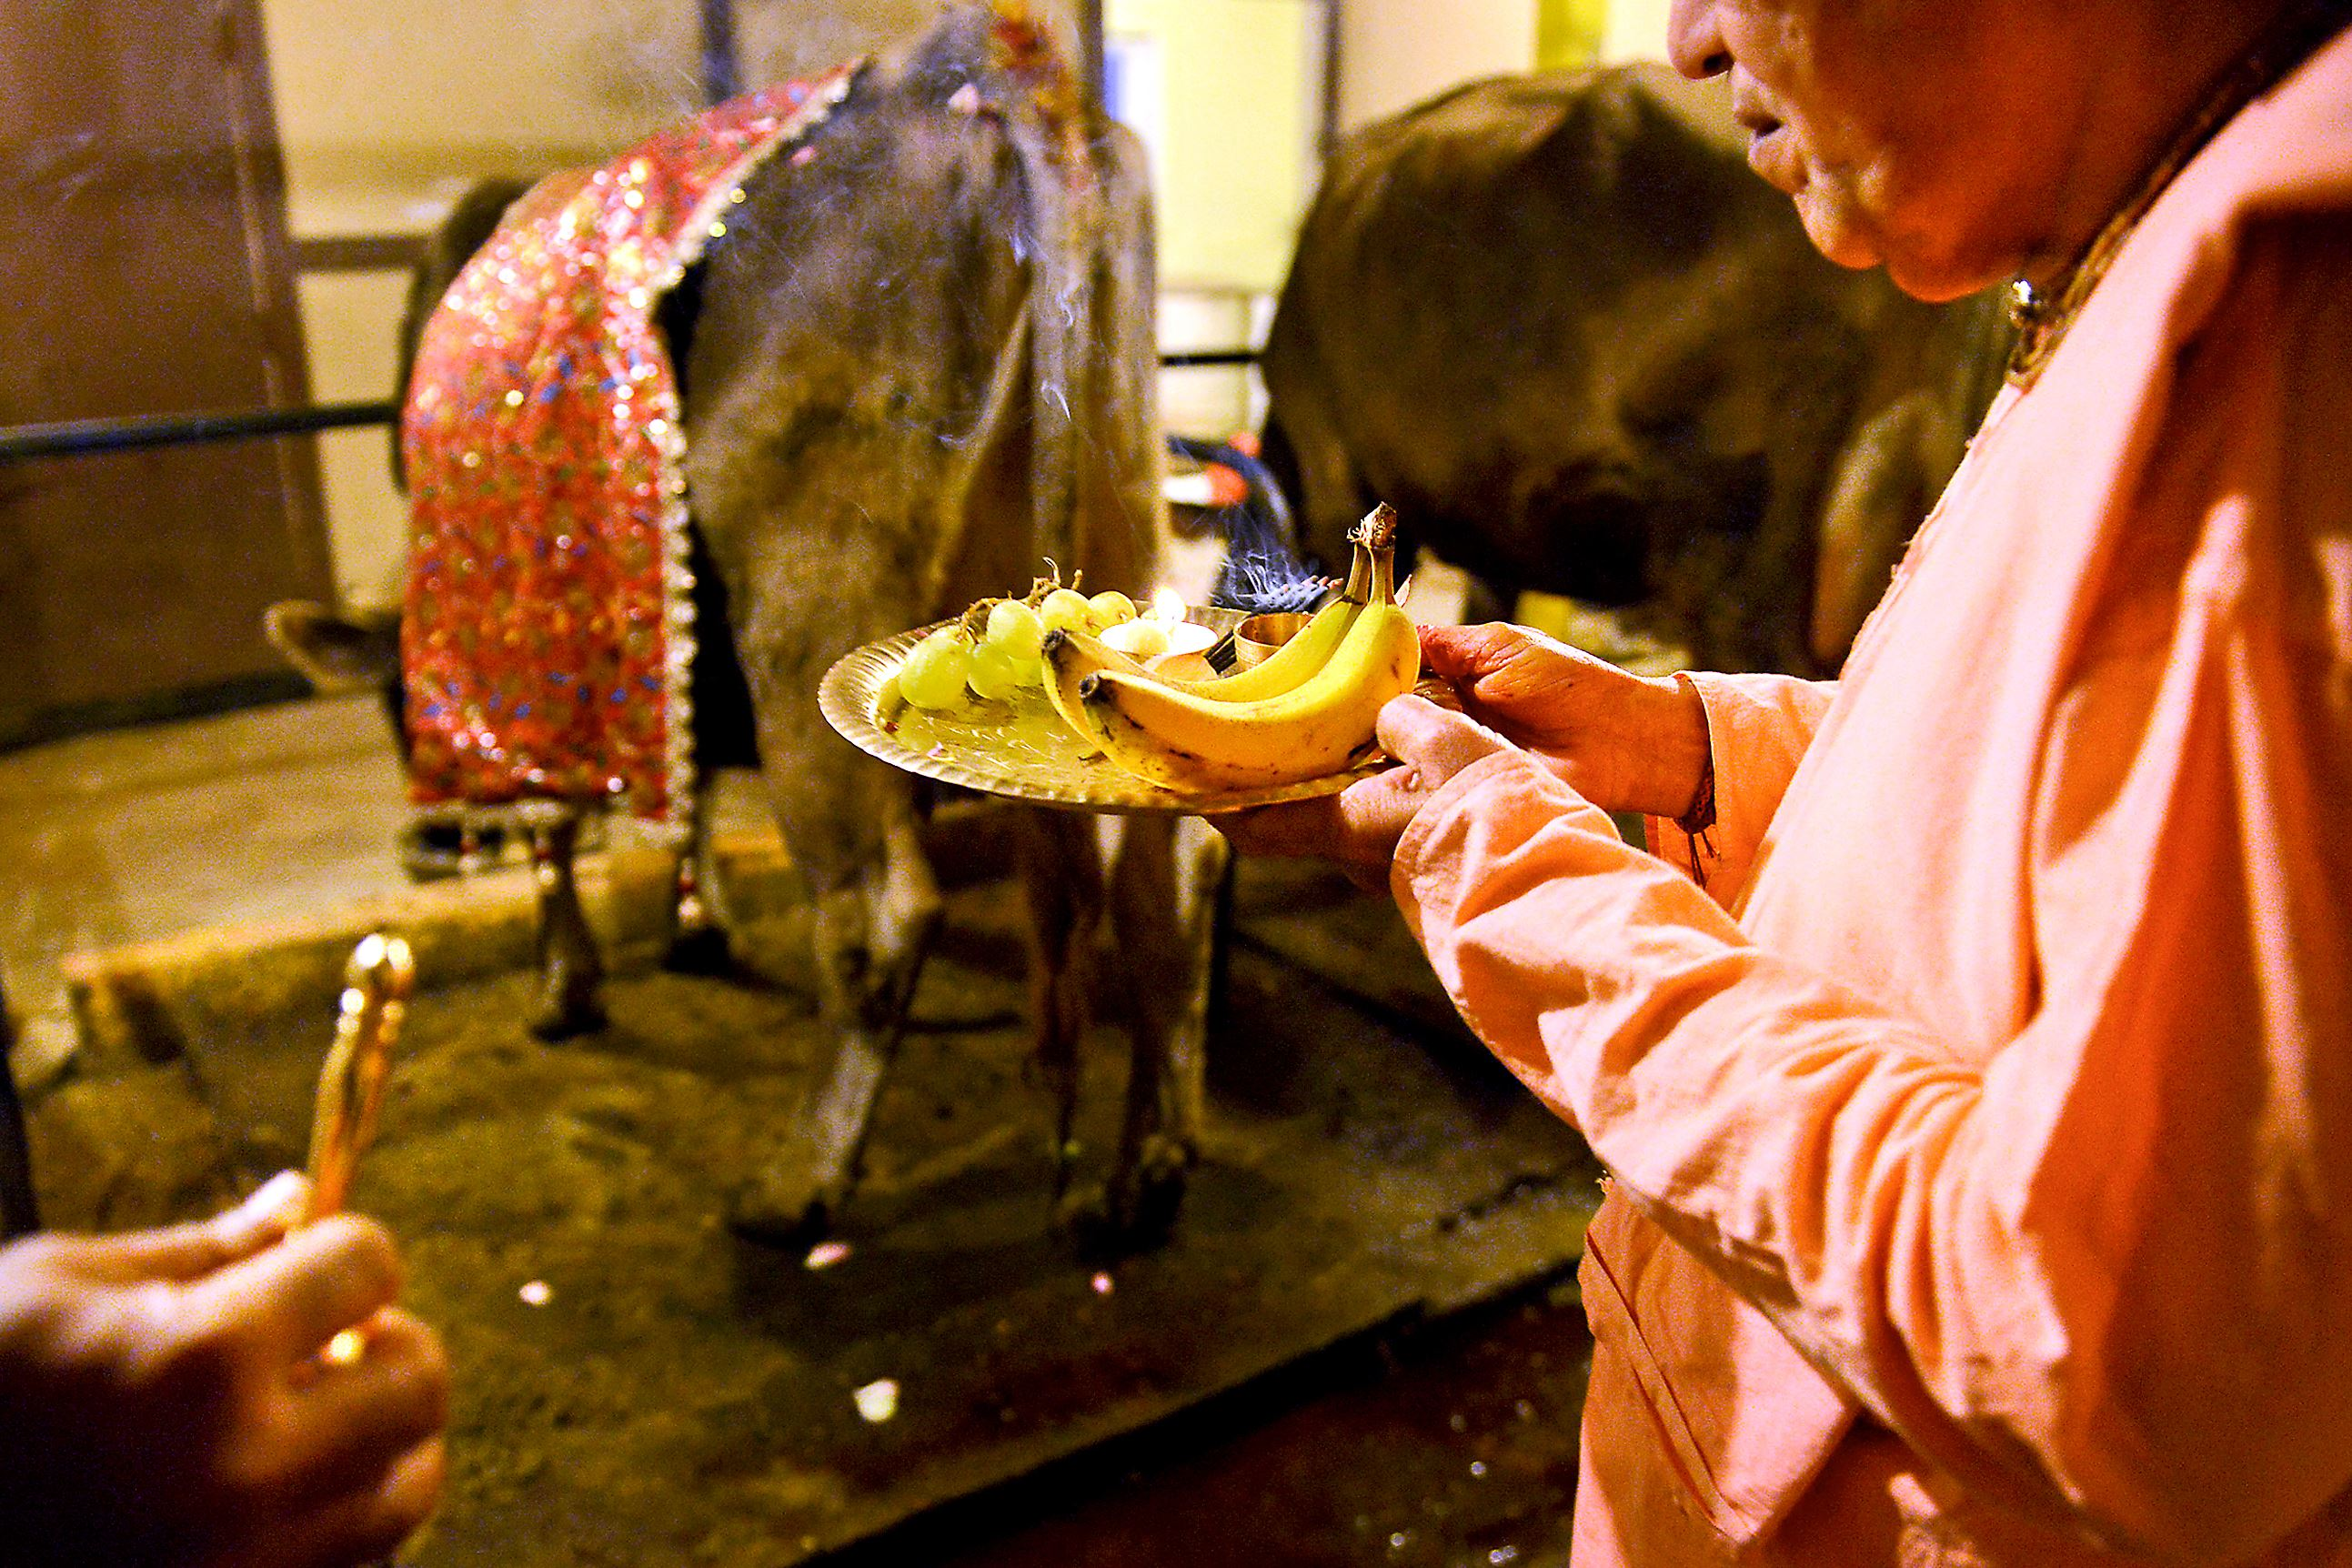 """20151210JR-NewVrindaban4-5 Sri Rupa, 46, left, and Venkadesha Krishna Das, 77, worship in the cow barn at New Vrindaban before dawn on Dec. 1. The cow is a sacred animal in Krishna consciousness. Ananda Vidya Das, who cares for the cows said he was originally concerned that """"fracking"""" might harm the animals, but changed his mind. """"I support their [leaders] intelligent decision. Just like a knife in the hand of a doctor can do good, a knife in the hand of a murder can do harm,"""" he said making an analogy to the revenue from signing a drilling lease."""